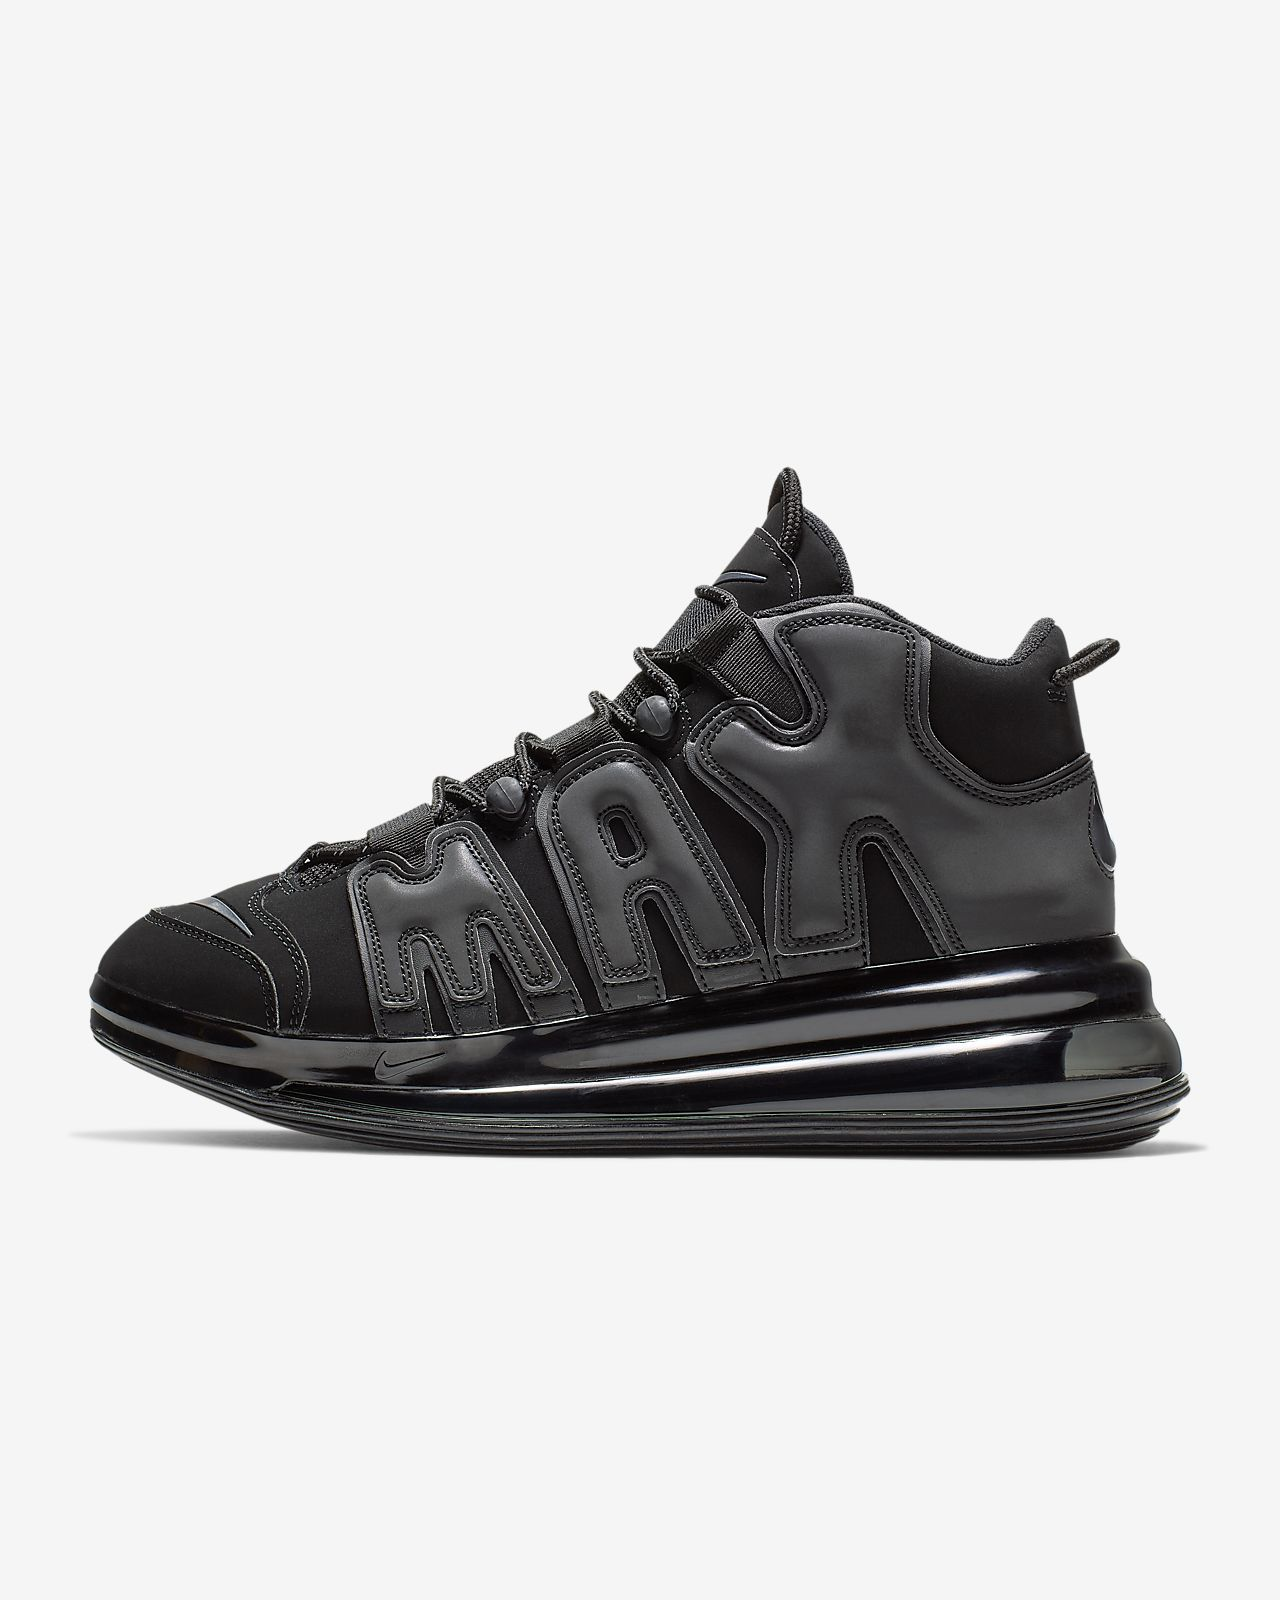 factory authentic 006c7 e3399 ... Nike Air More Uptempo 720 QS 1 Mens Shoe